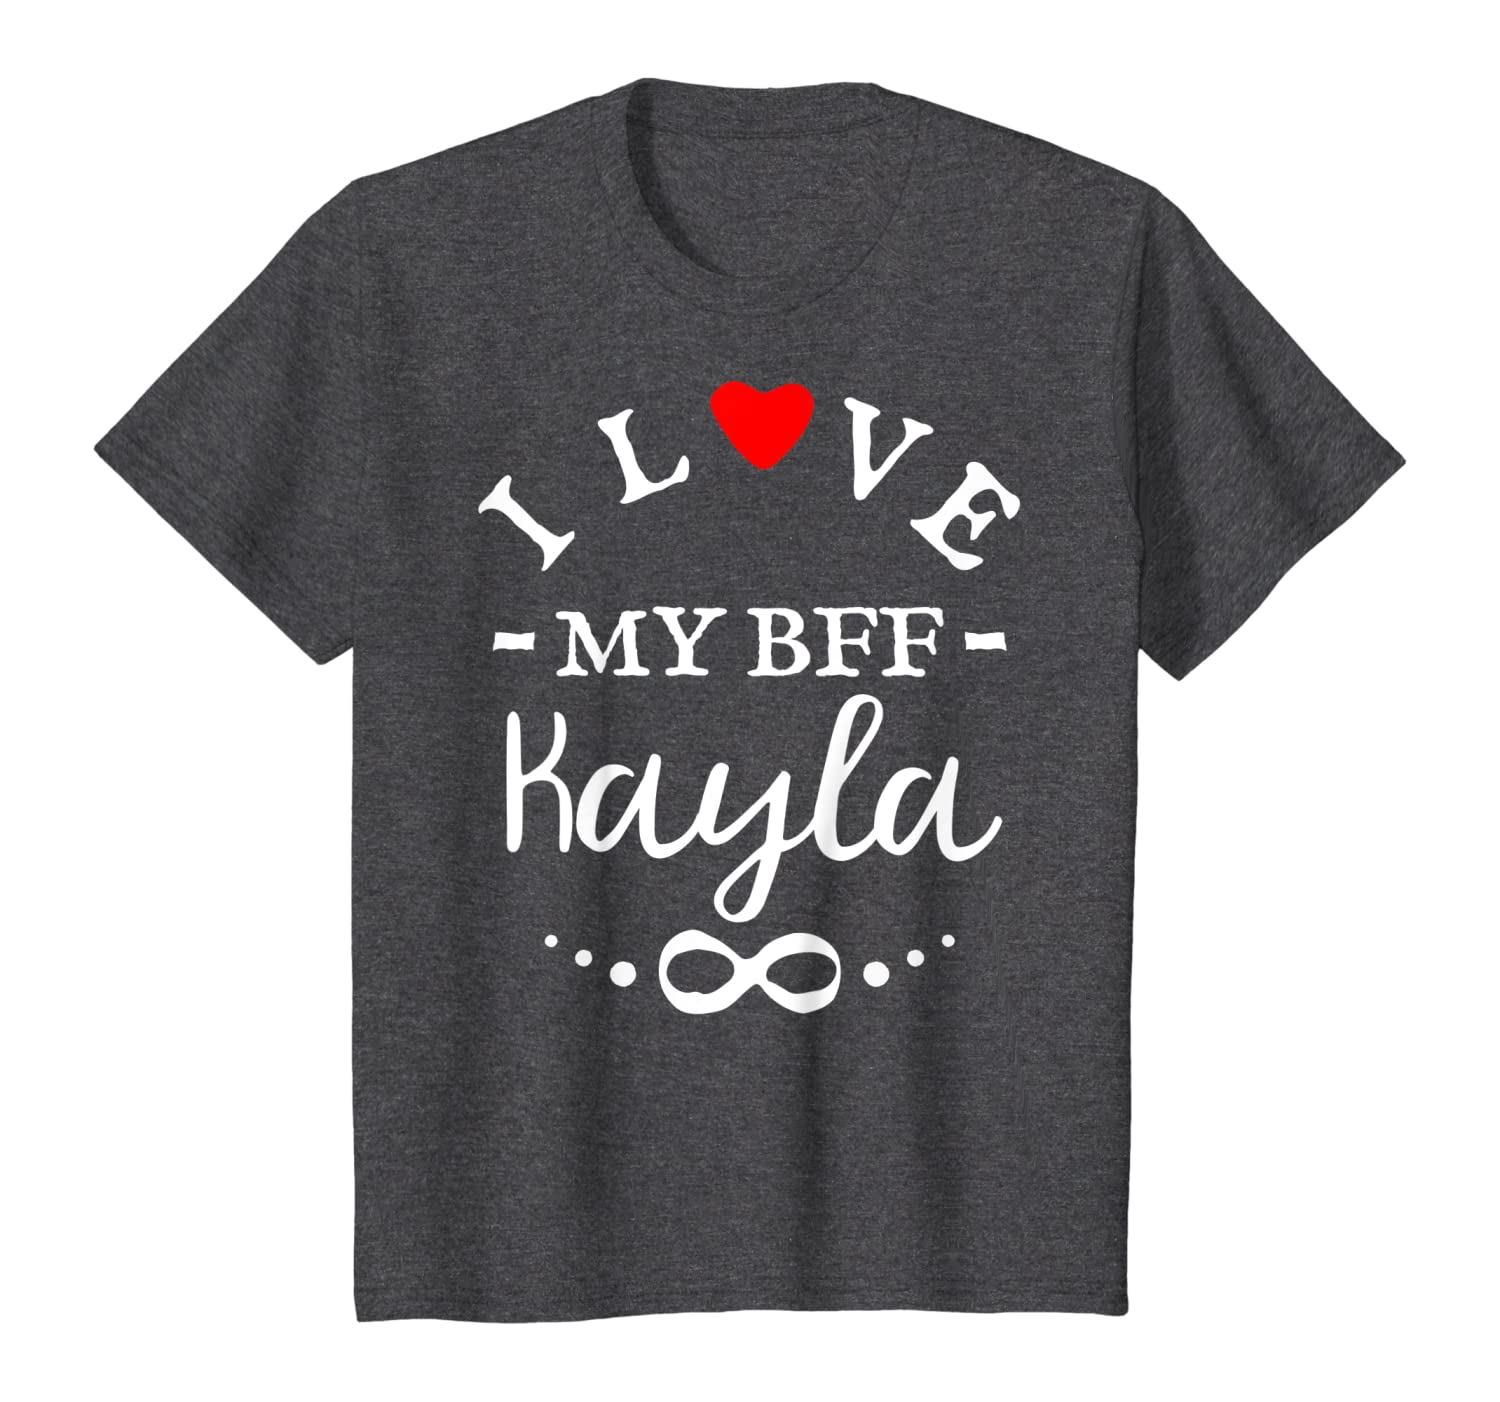 Amazon Com I Love My Bff Kayla Cute Personalized Name Best Friends T Shirt Clothing,2018 Grand Design Solitude 375res